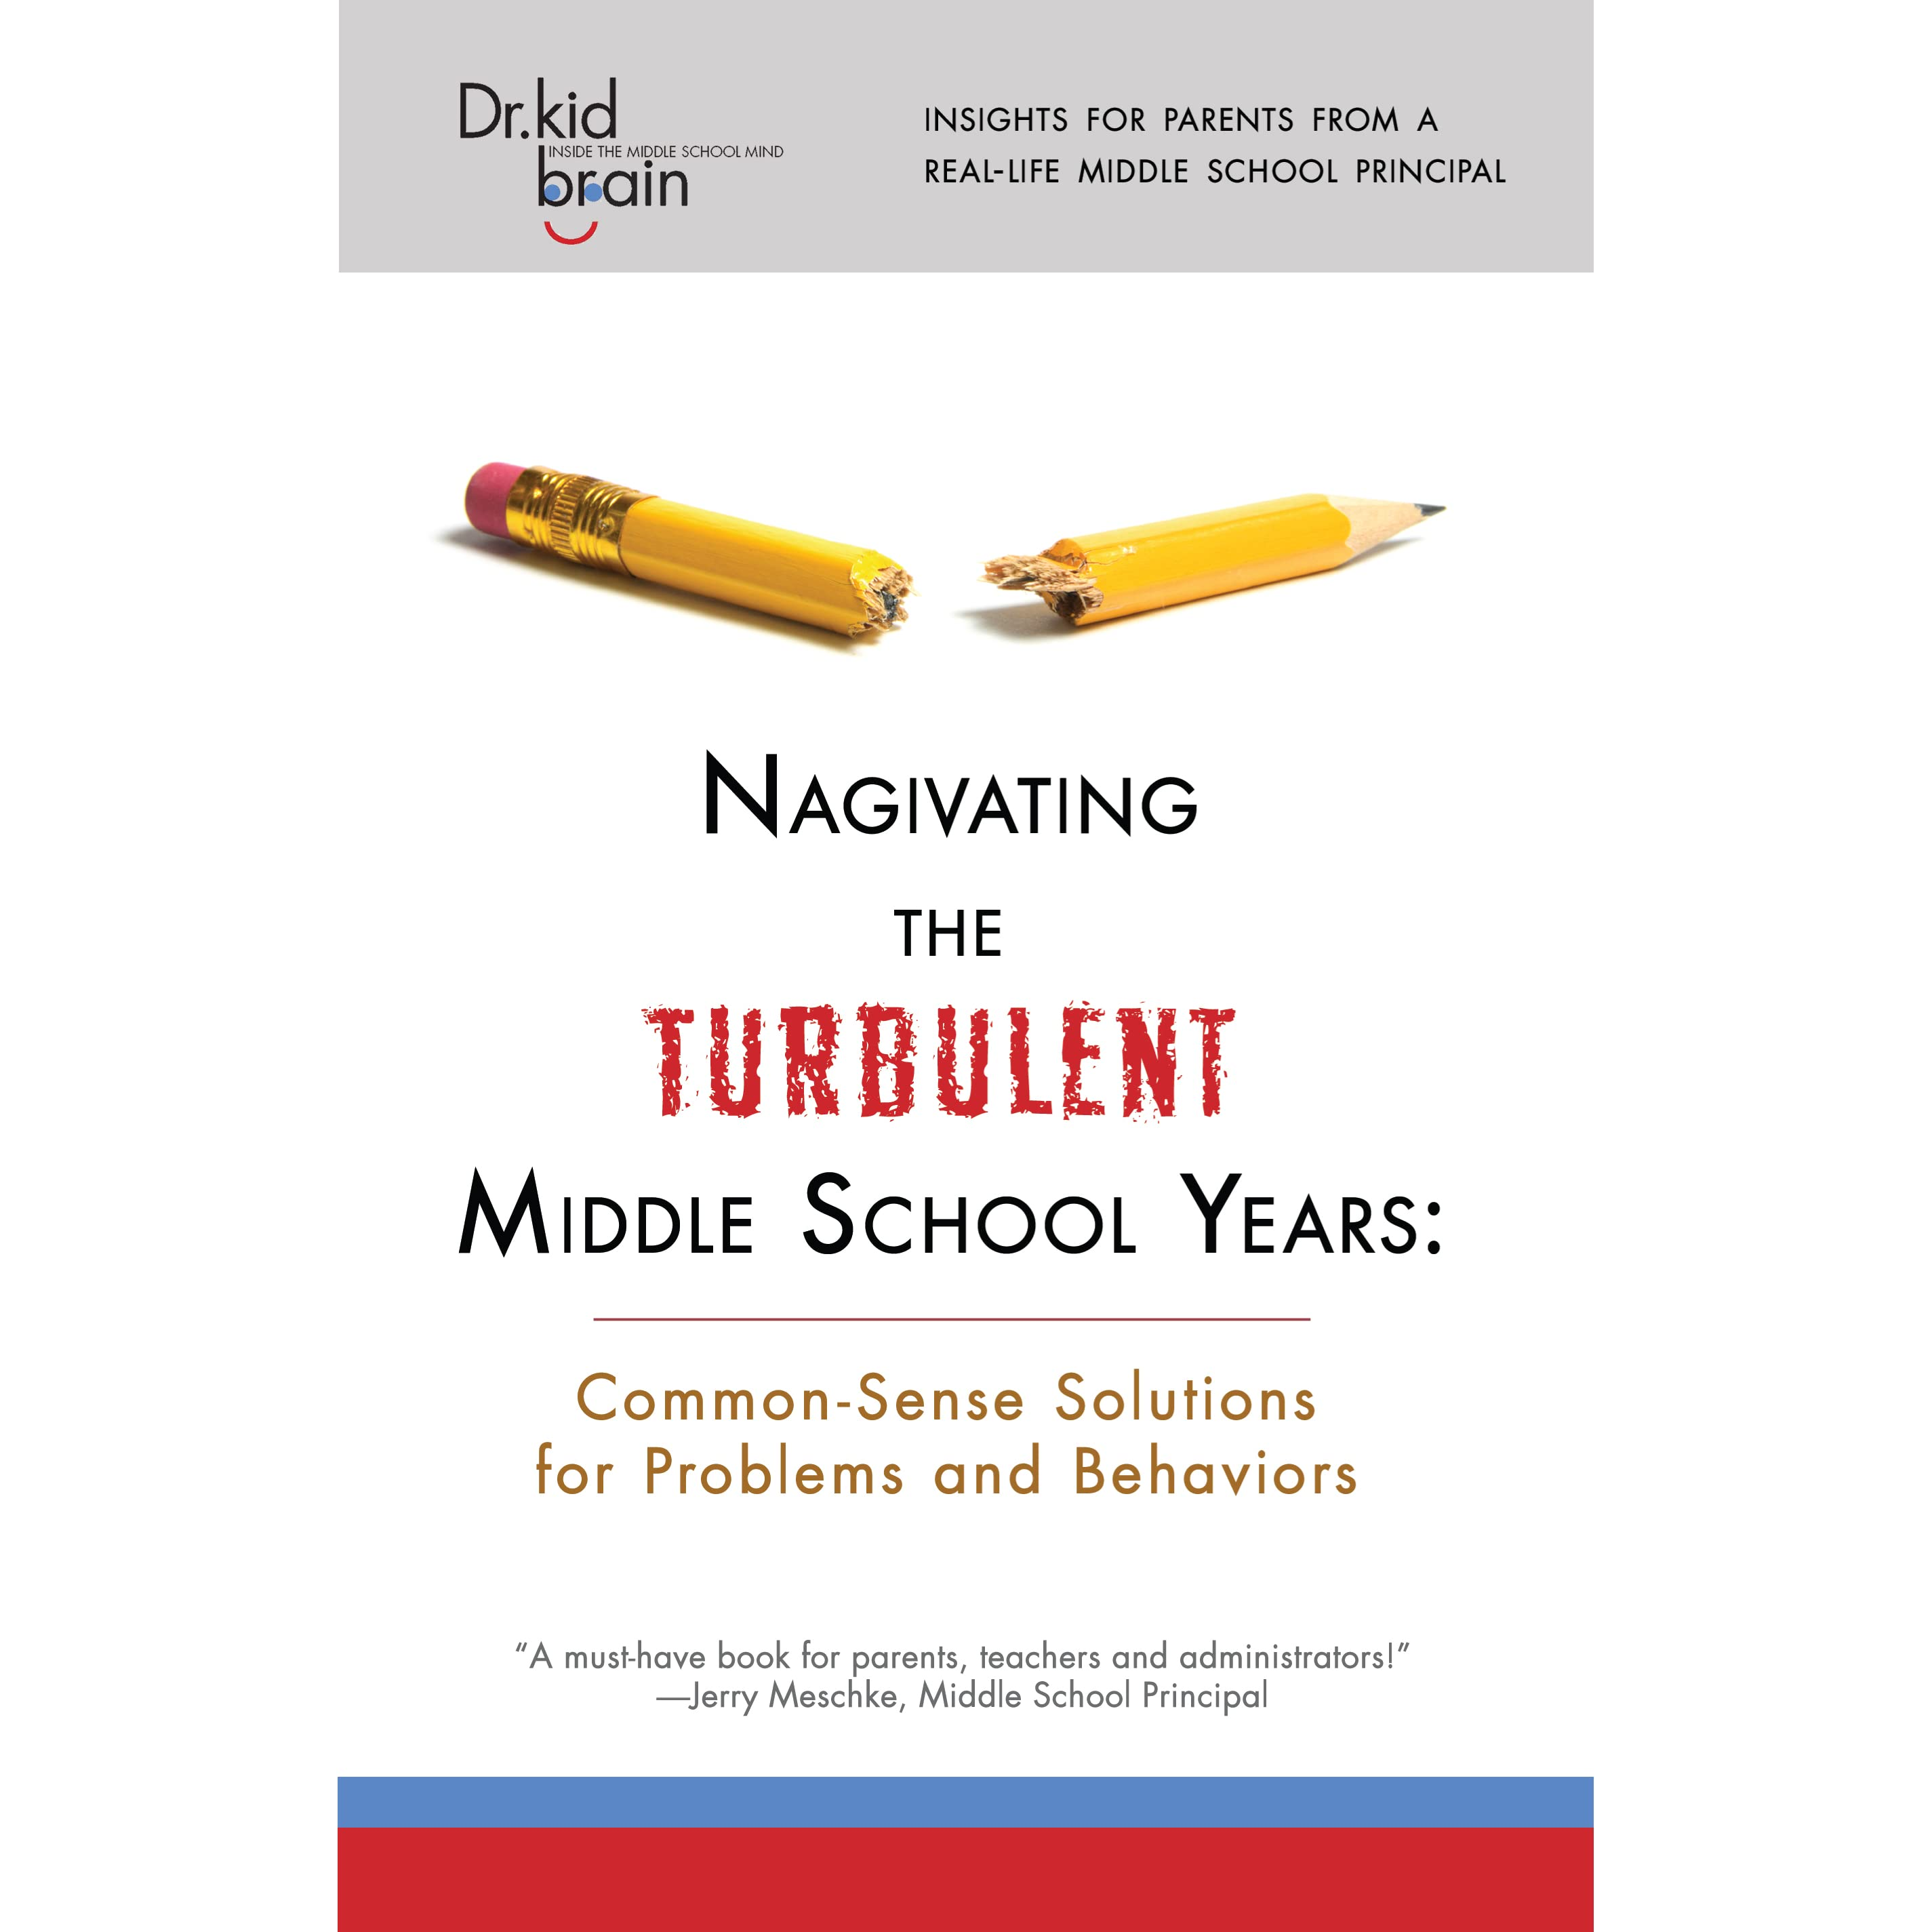 Navigating the Turbulent Middle School Years: Common-Sense